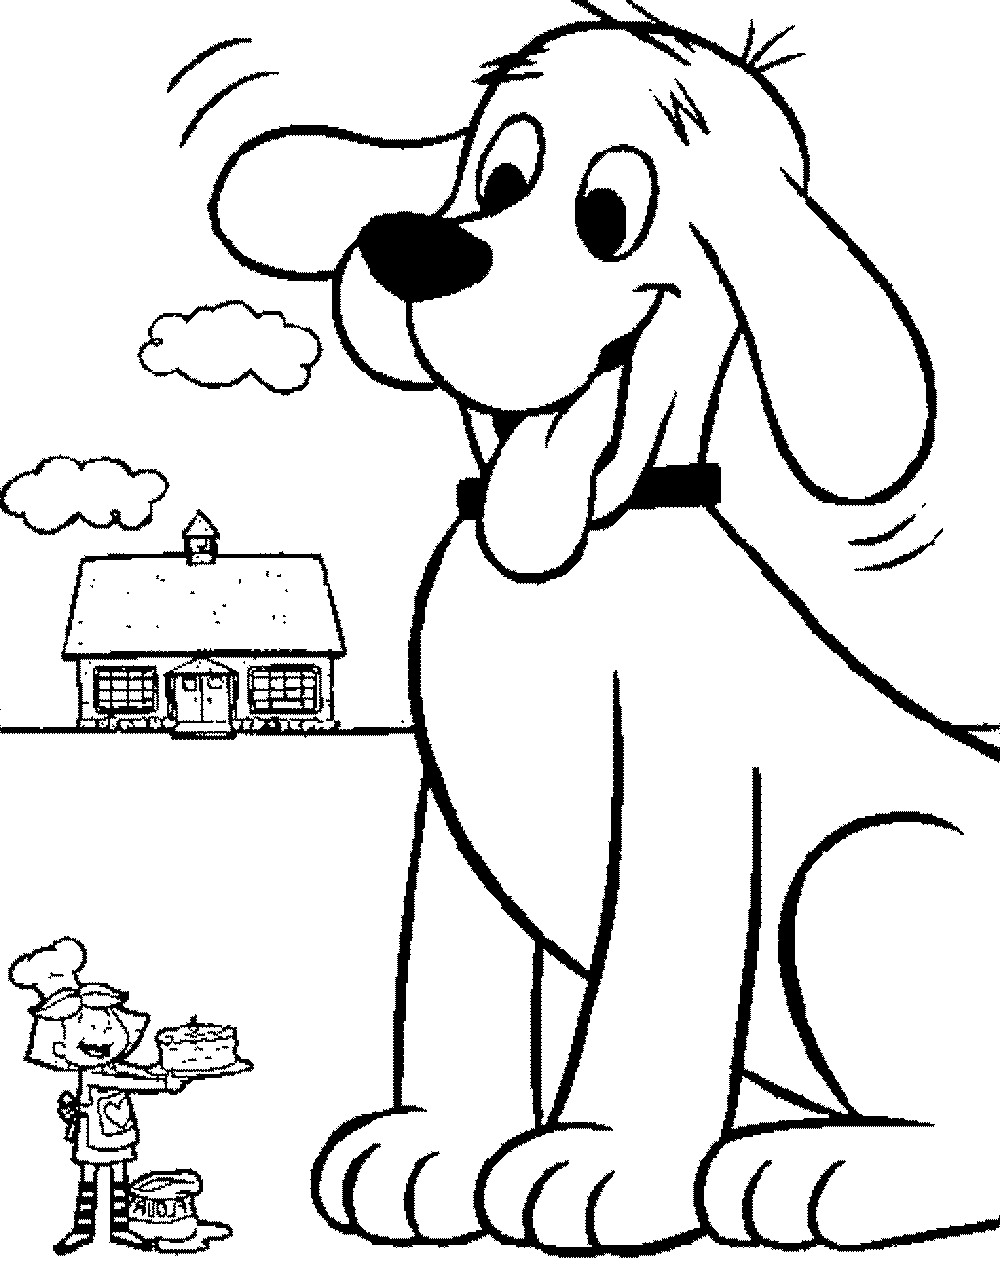 Employ Dog Coloring Pages For Your Childrens Creative Time